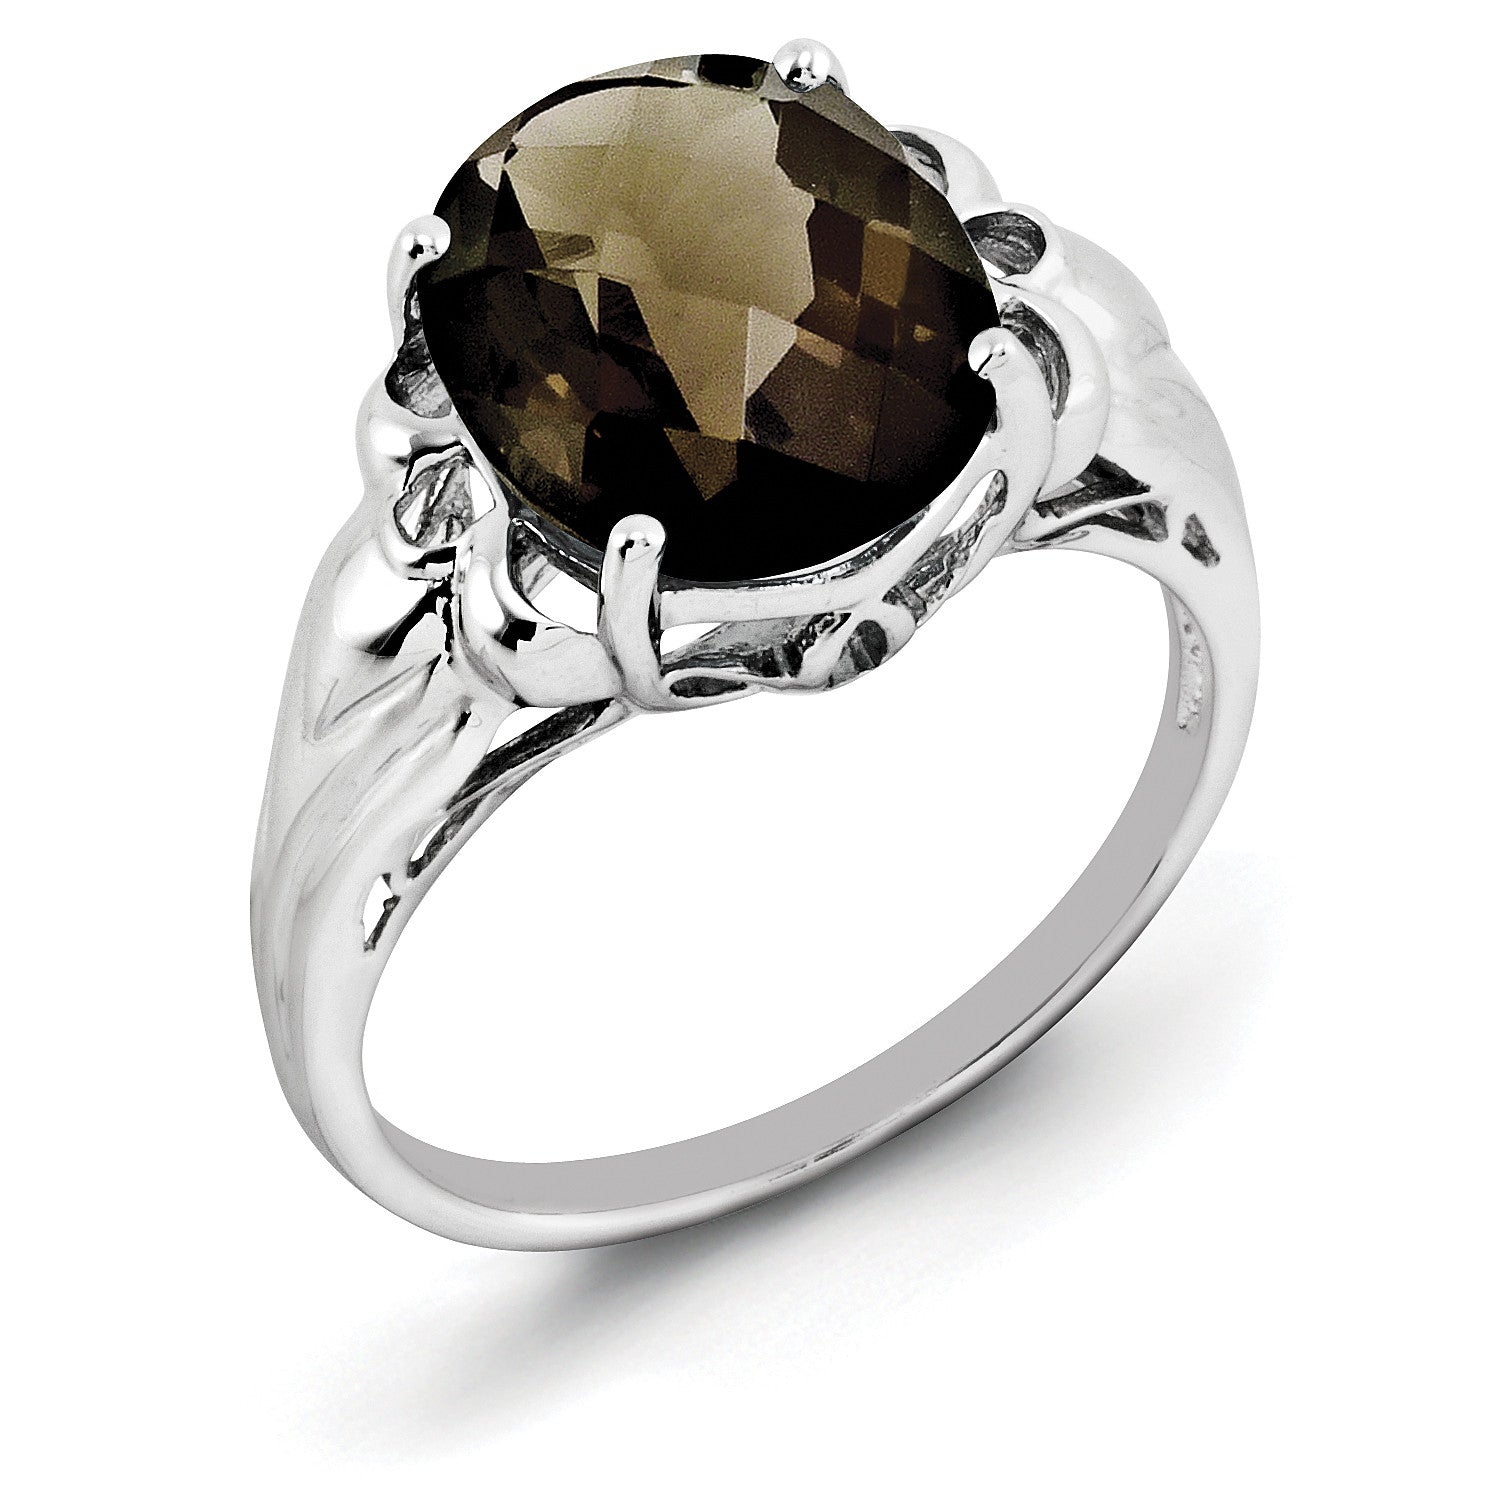 Sterling Silver Rhodium Oval Checker-Cut Smoky Quartz Ring QR2960SQ - shirin-diamonds